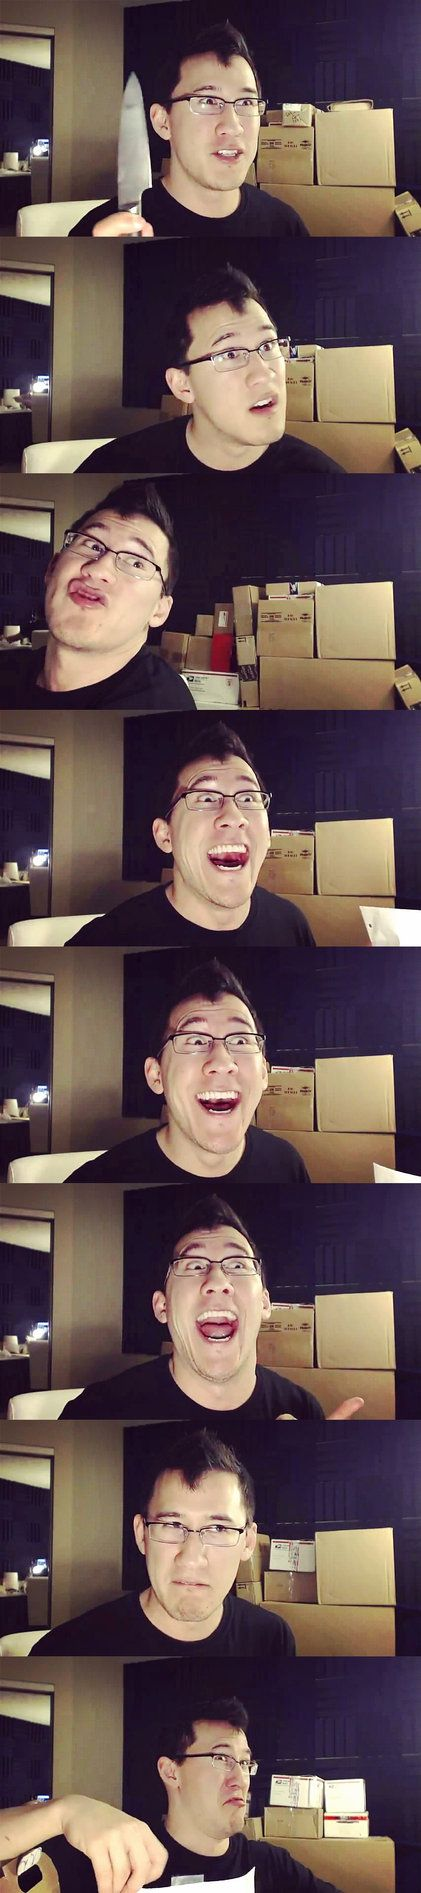 Printscreen-of-Markiplier#3 by ~Lonessy on deviantART -- [Official fangirl now. Sorry, Pinteresters, but this guy is awesome and you're gonna see more pics of him. HAHAHA.]